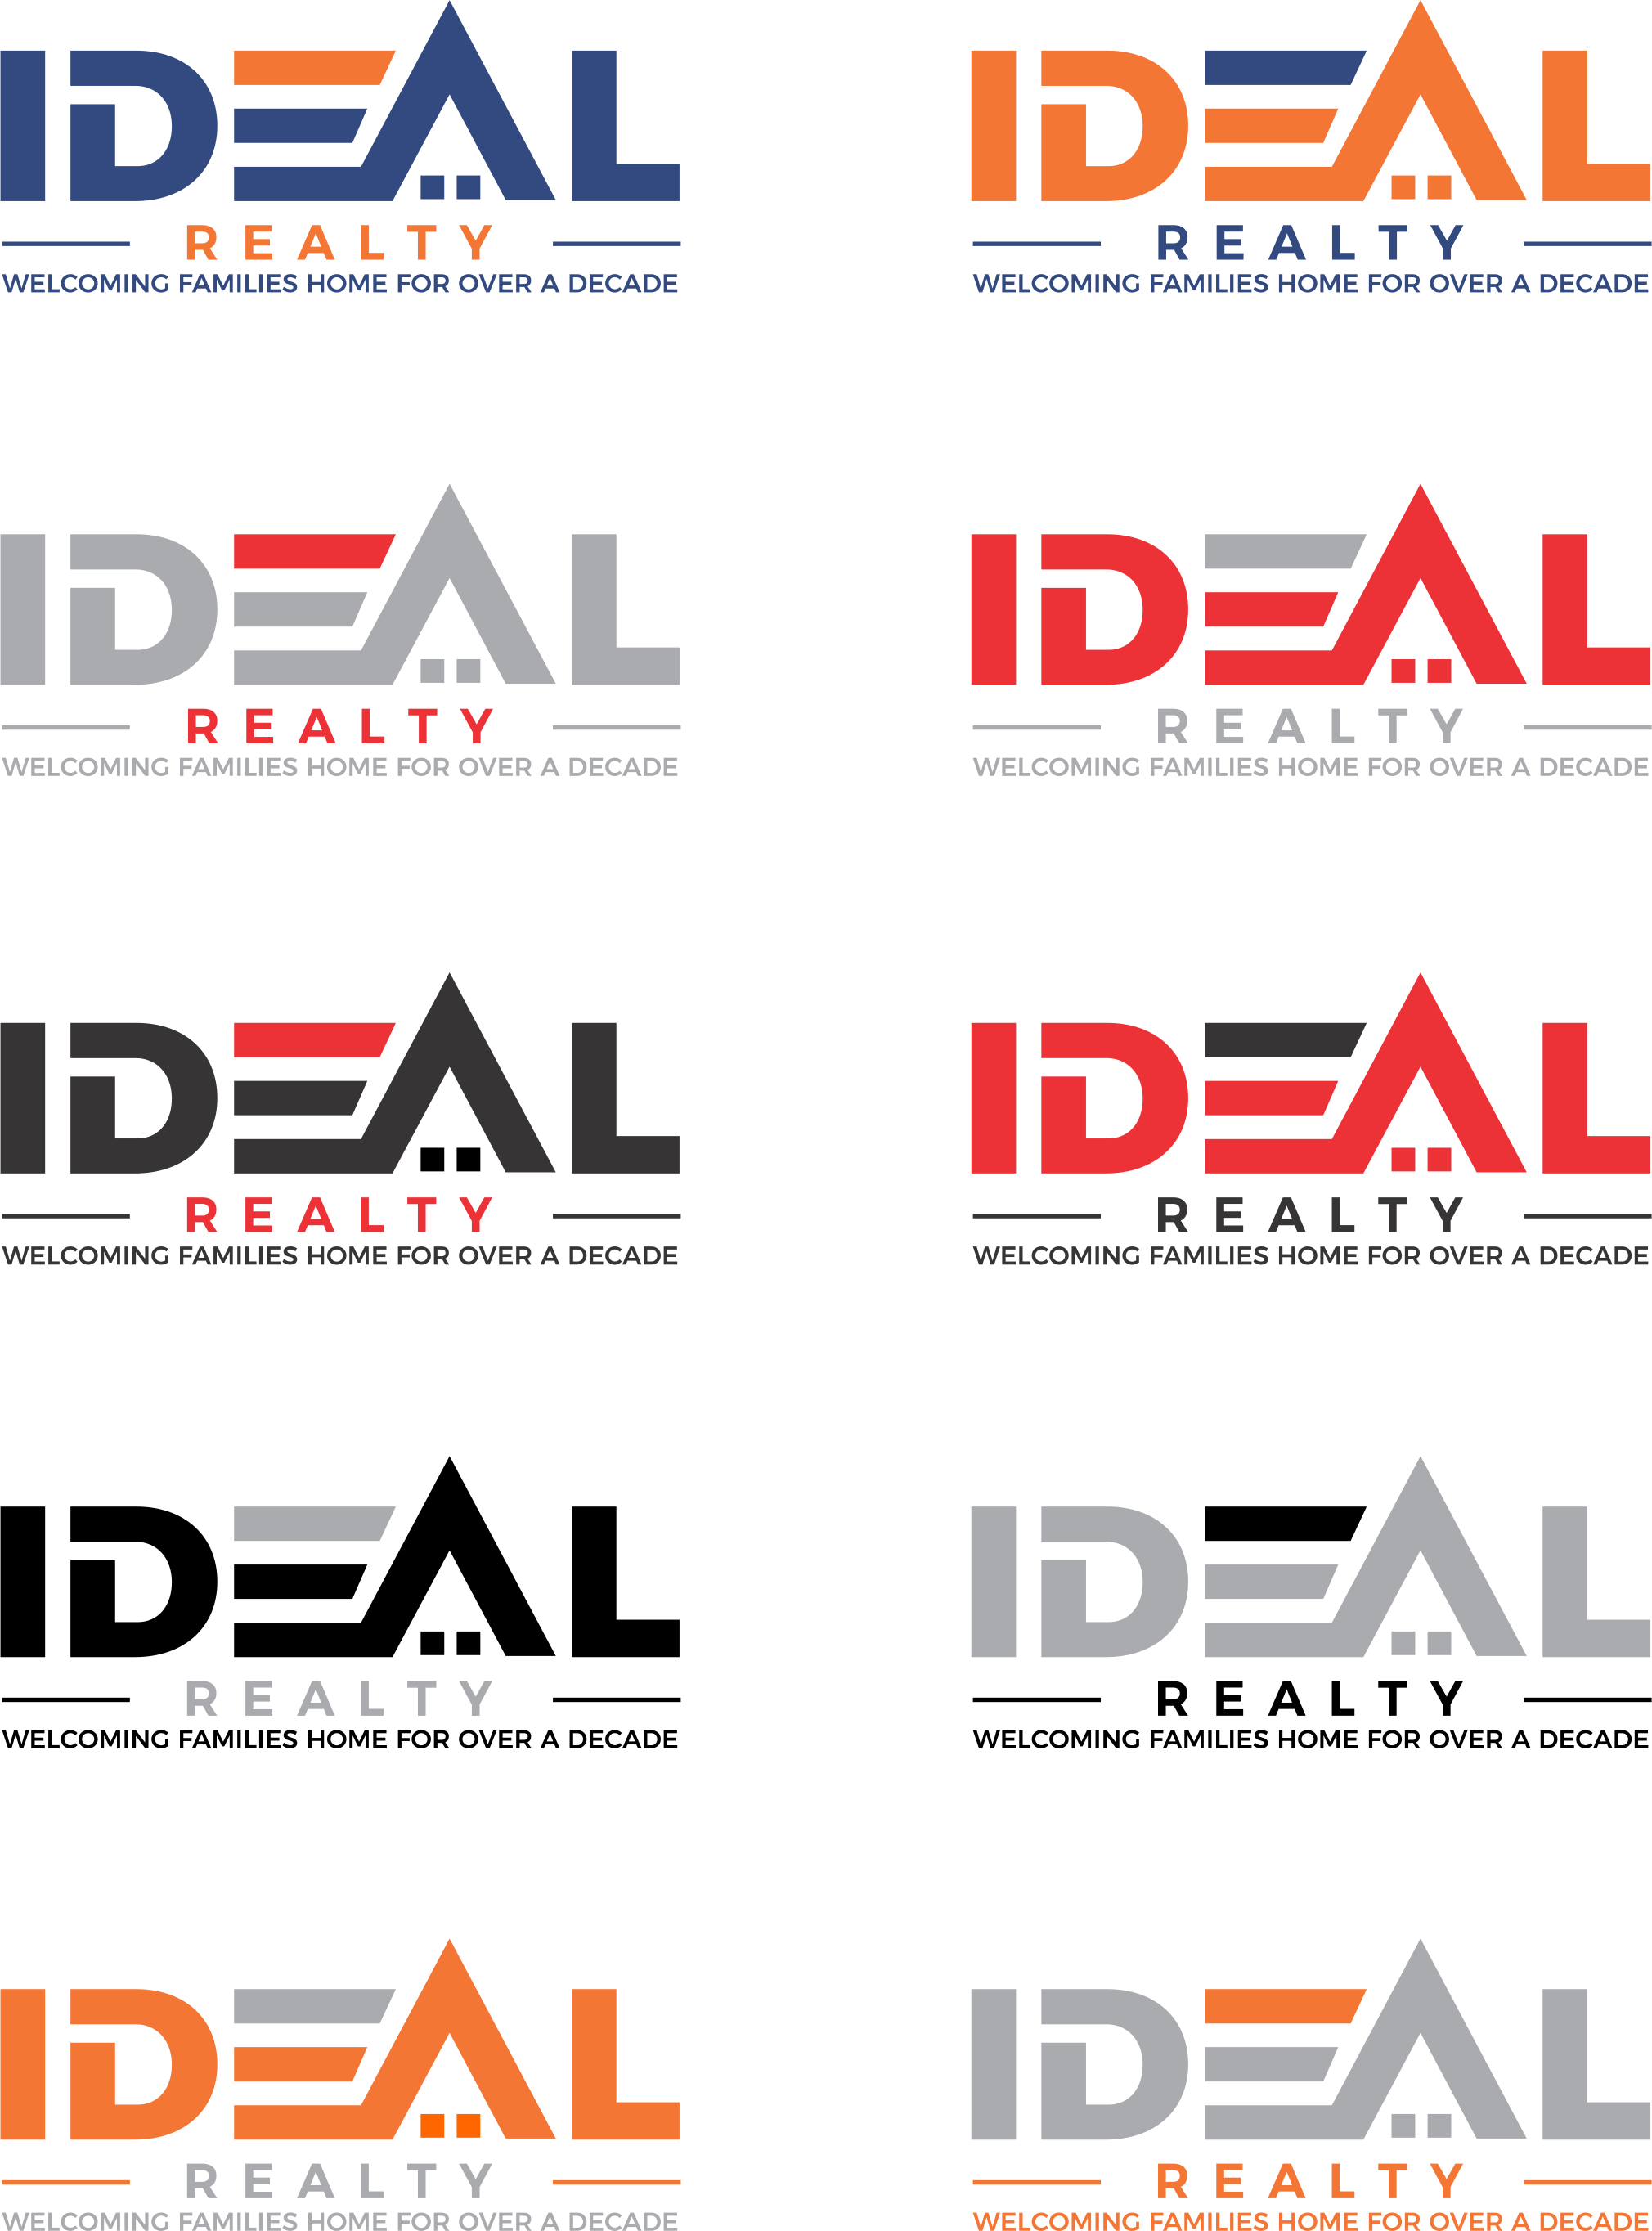 Re-design of current logo...Need more modern, cutting edge, bold and edgy logo.